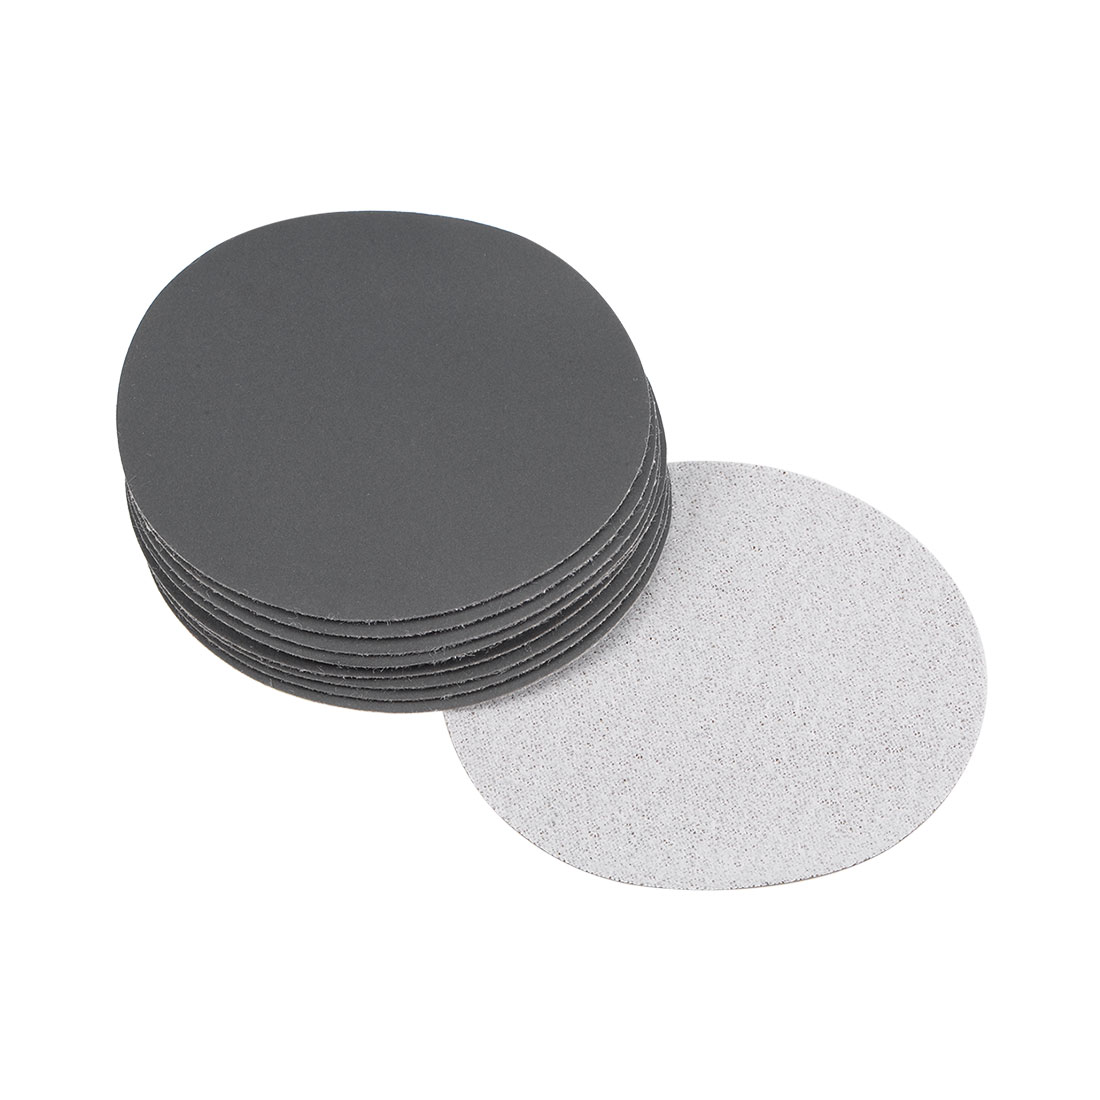 3 inch Wet Dry Discs 800 Grit Hook and Loop Sanding Disc Silicon Carbide 10pcs